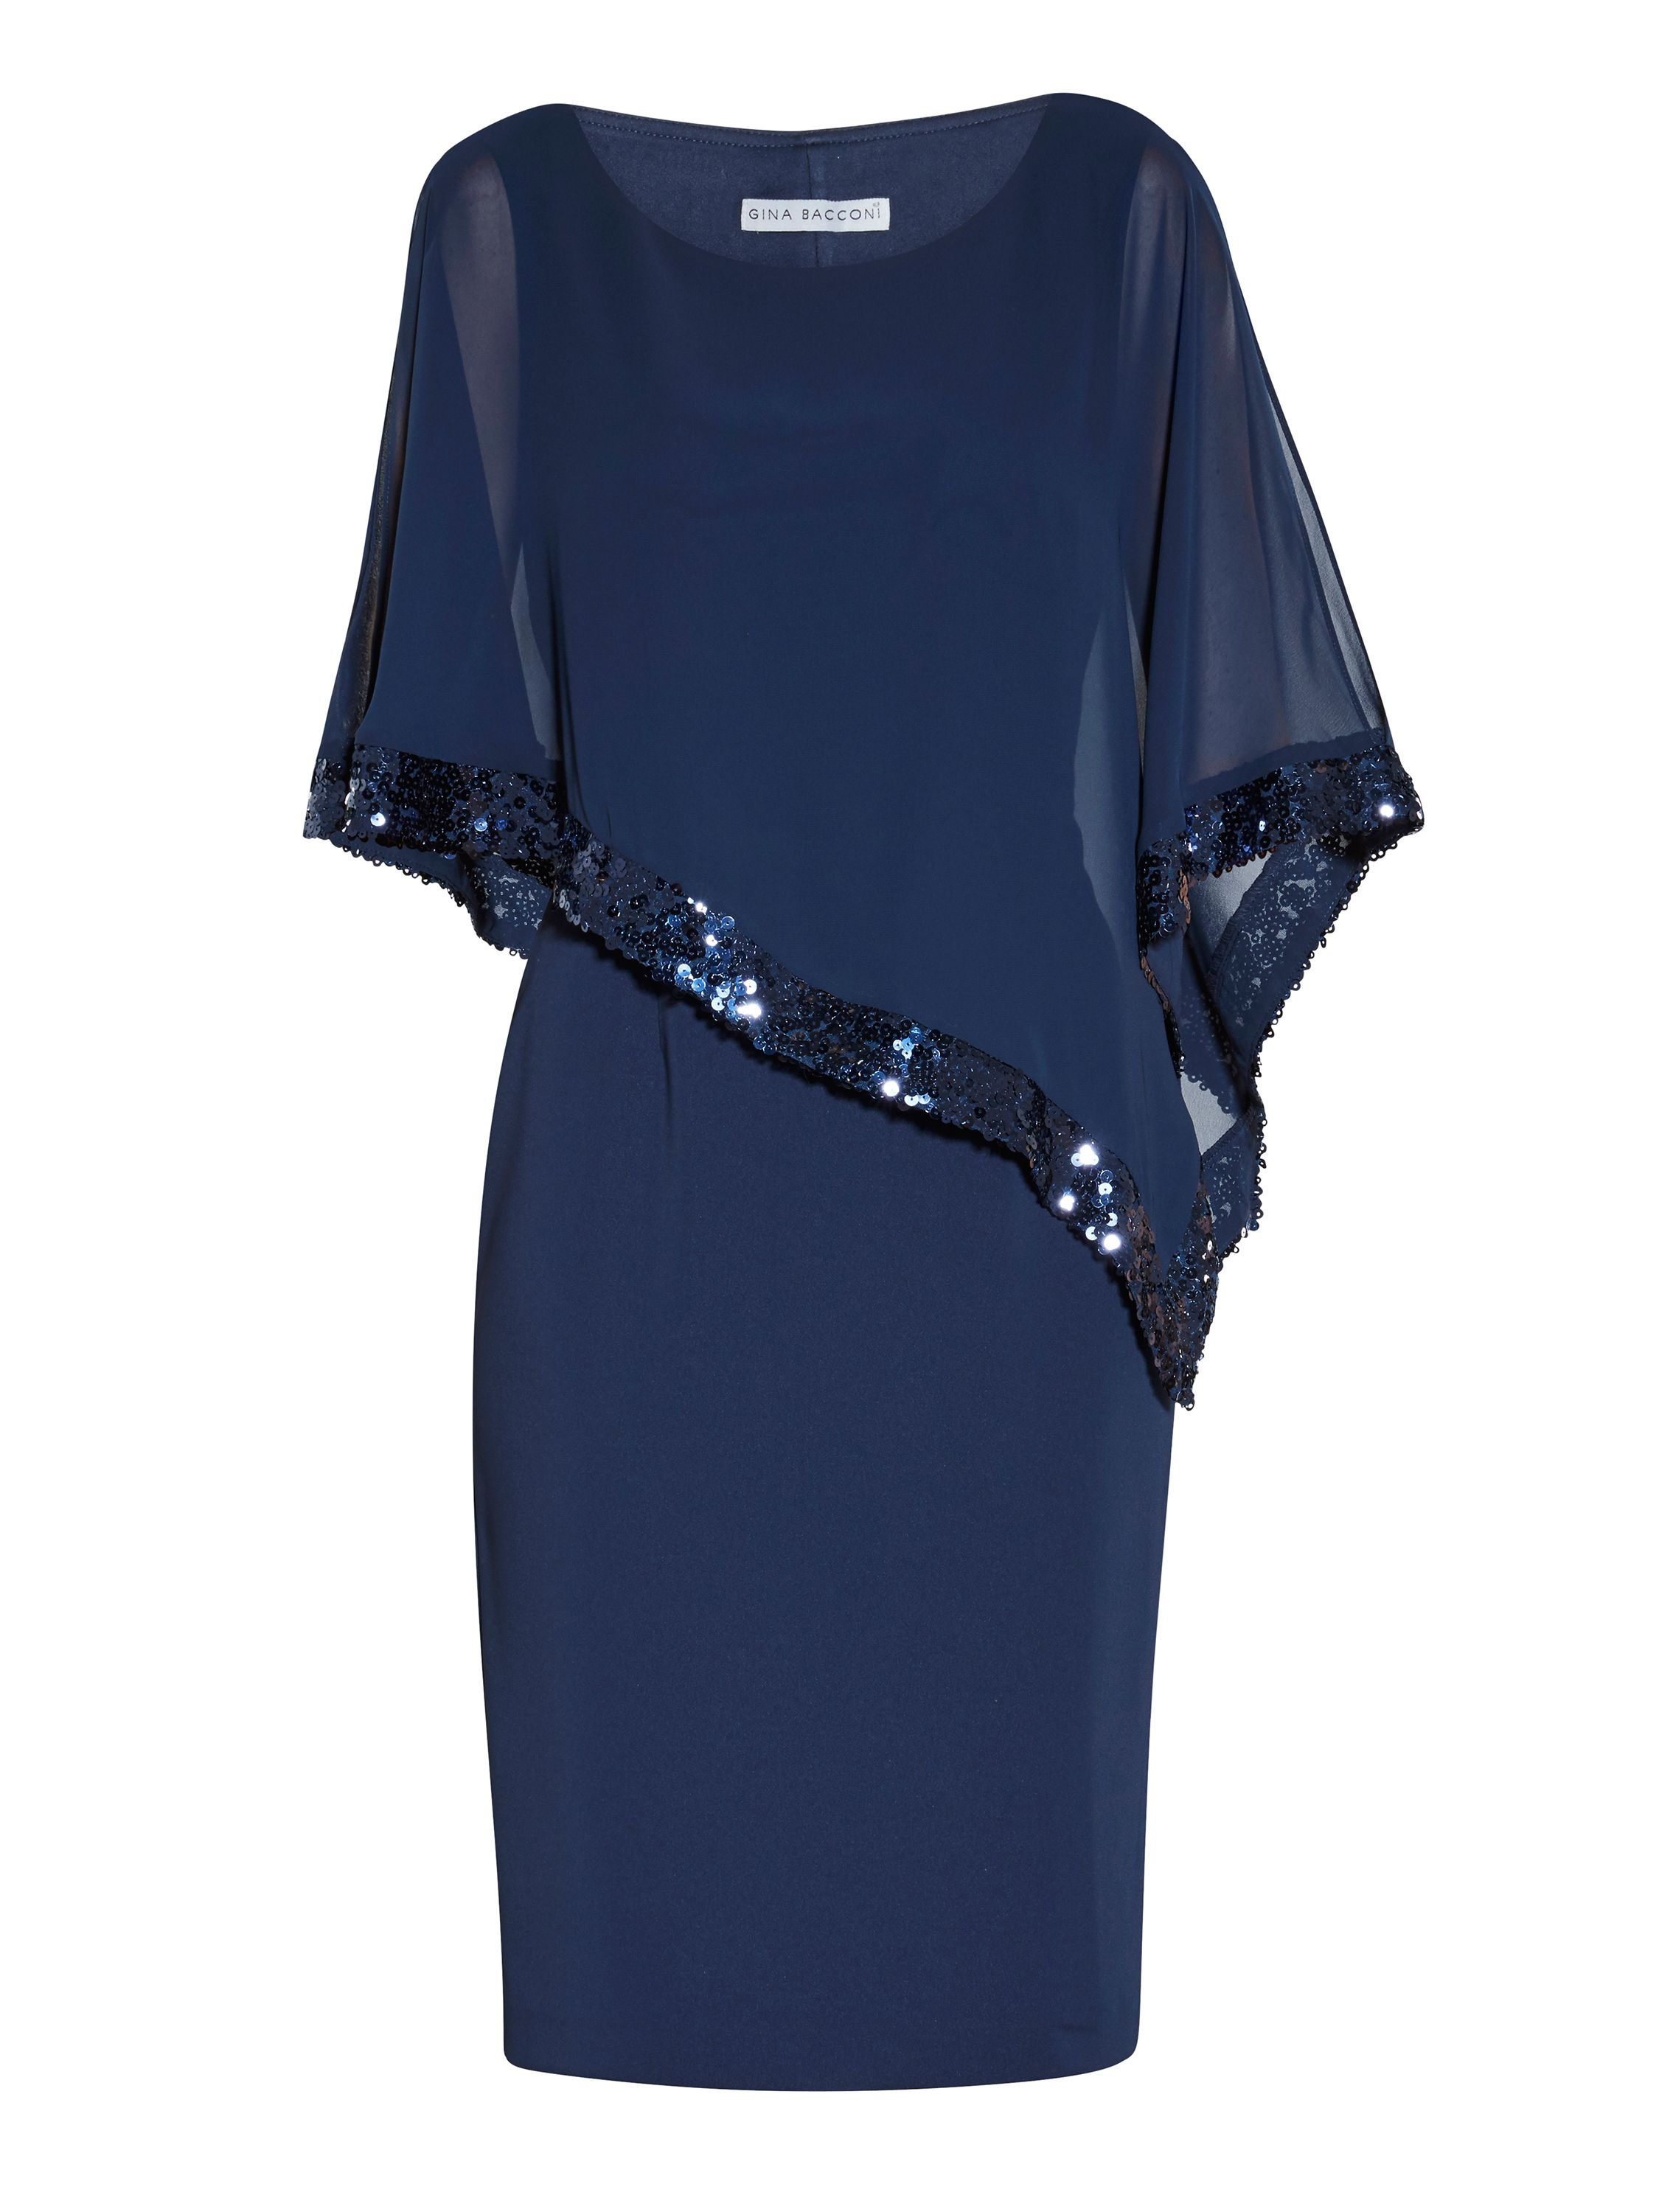 Gina Bacconi Crepe And Chiffon Dress With Sequin Trim, Blue